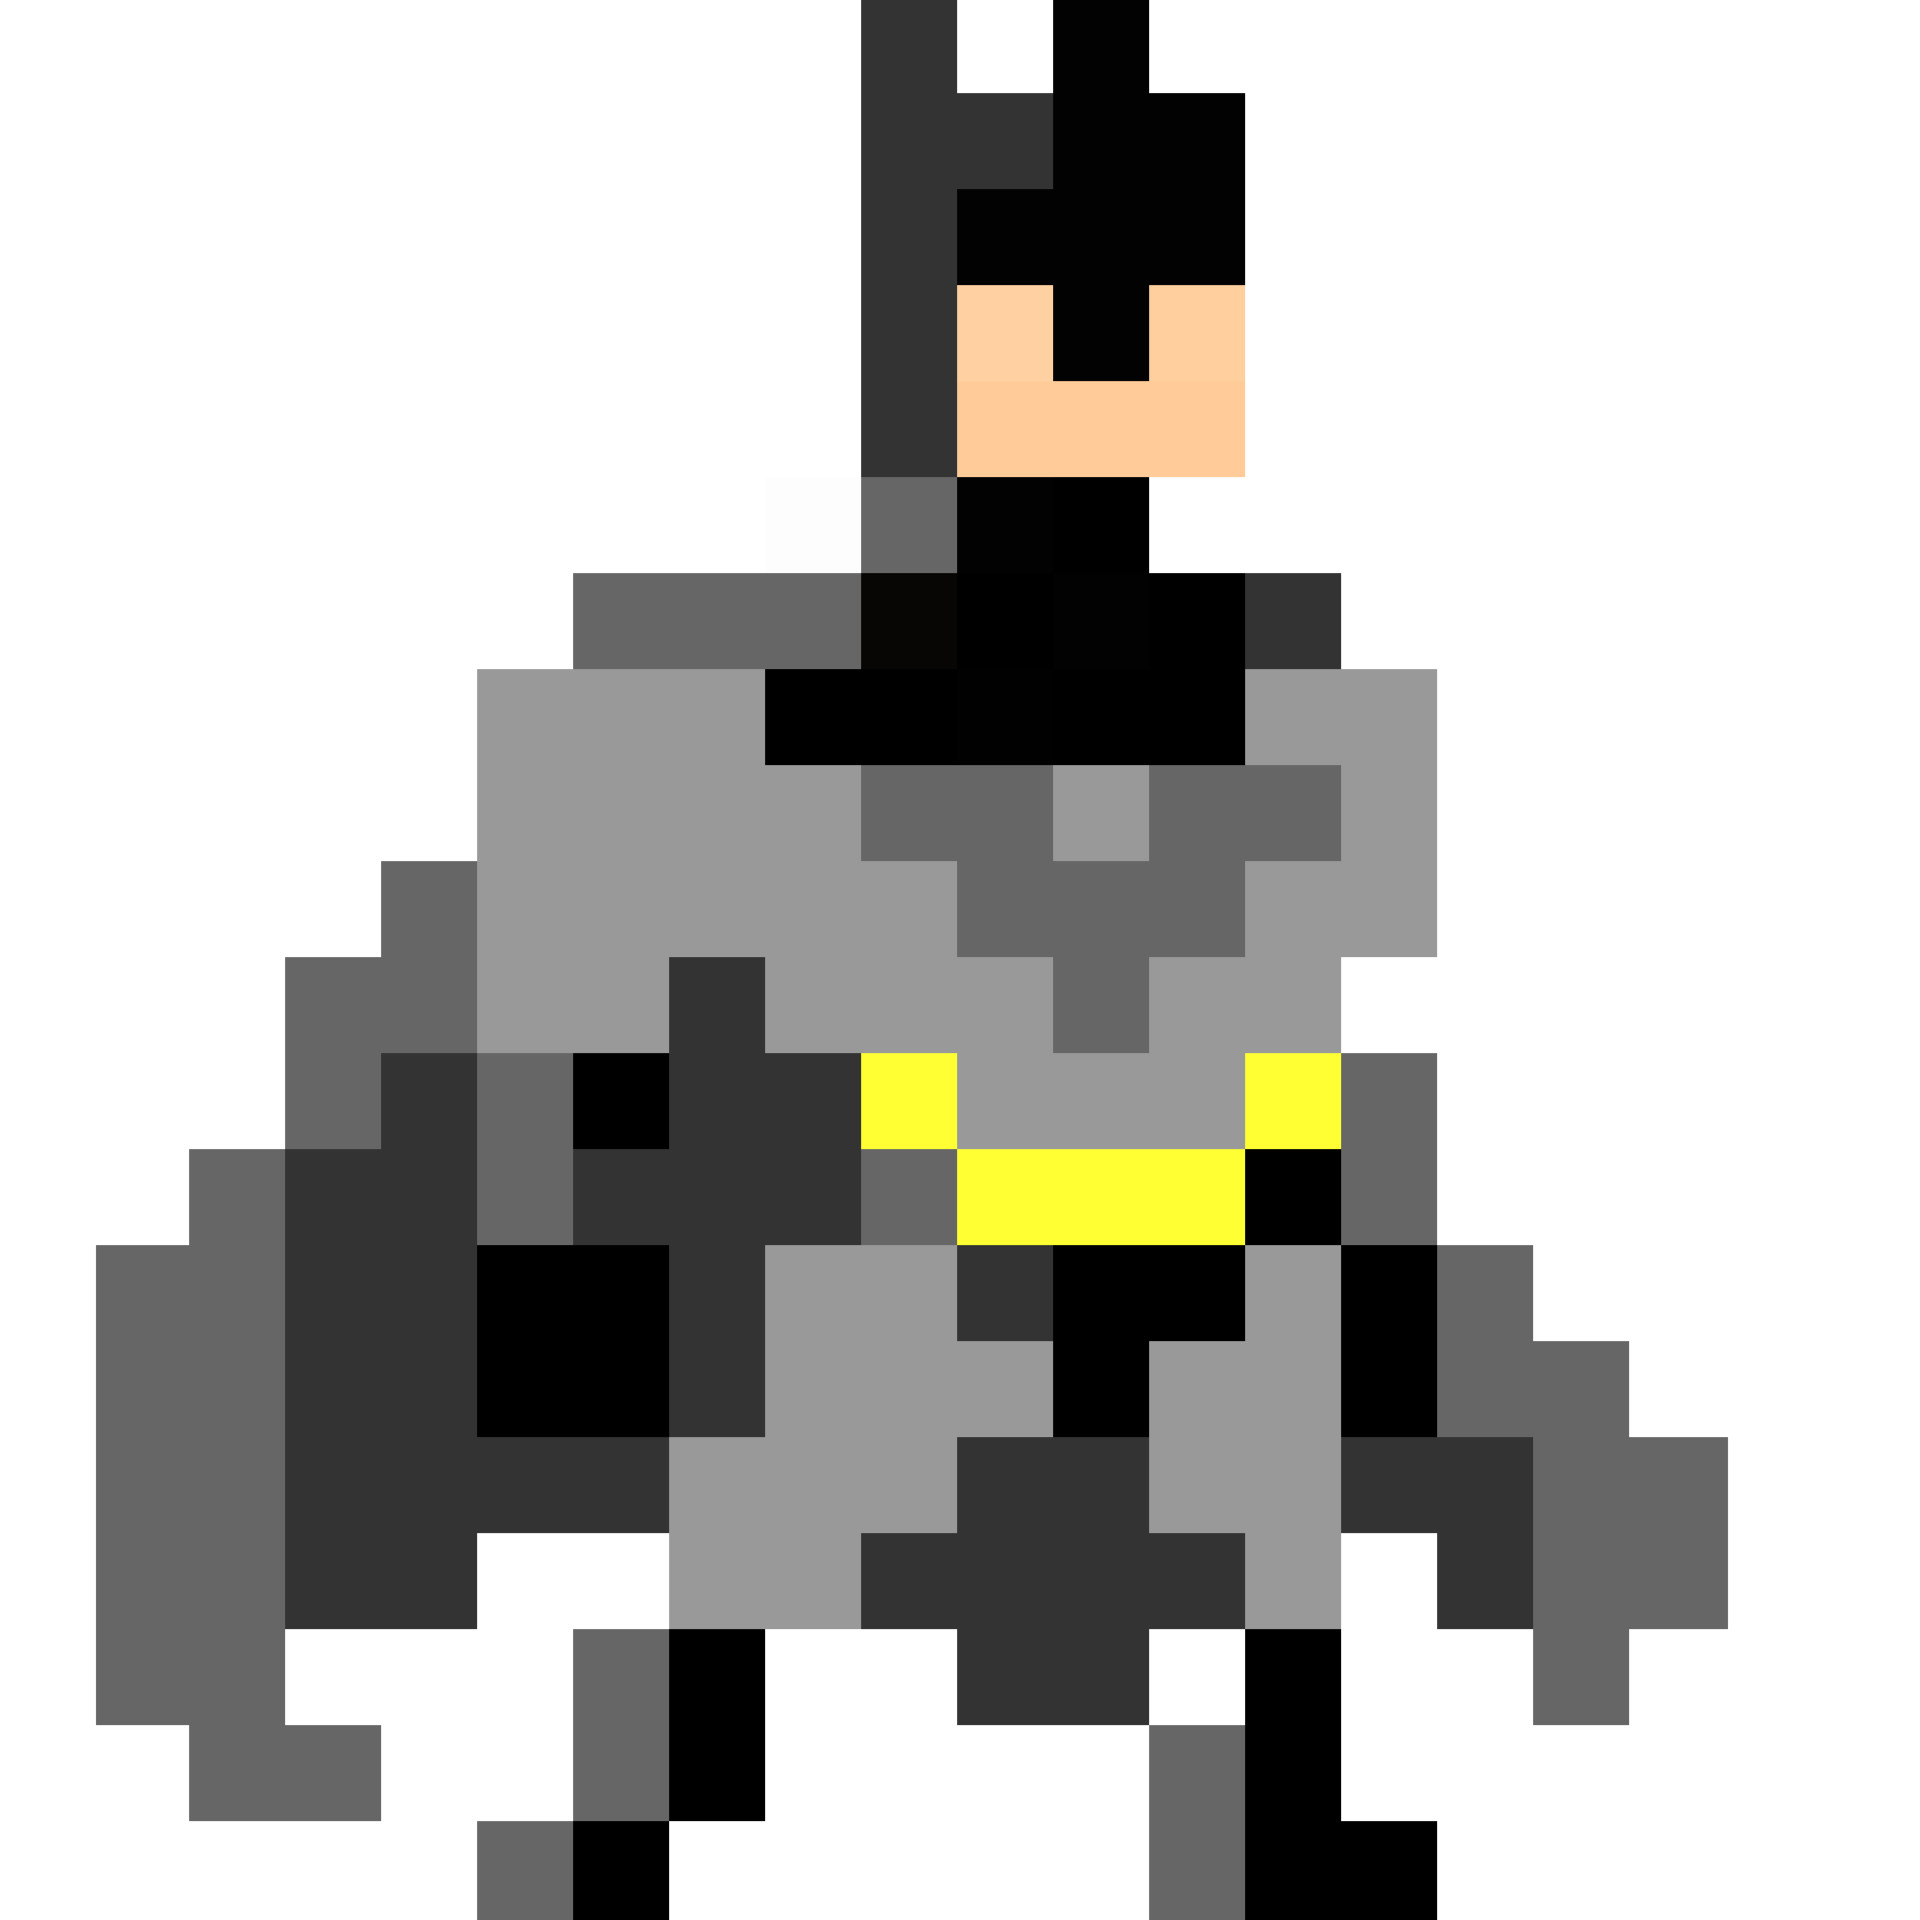 ArtStation - Superhero 8 bit art, Mar Daniel Garcia